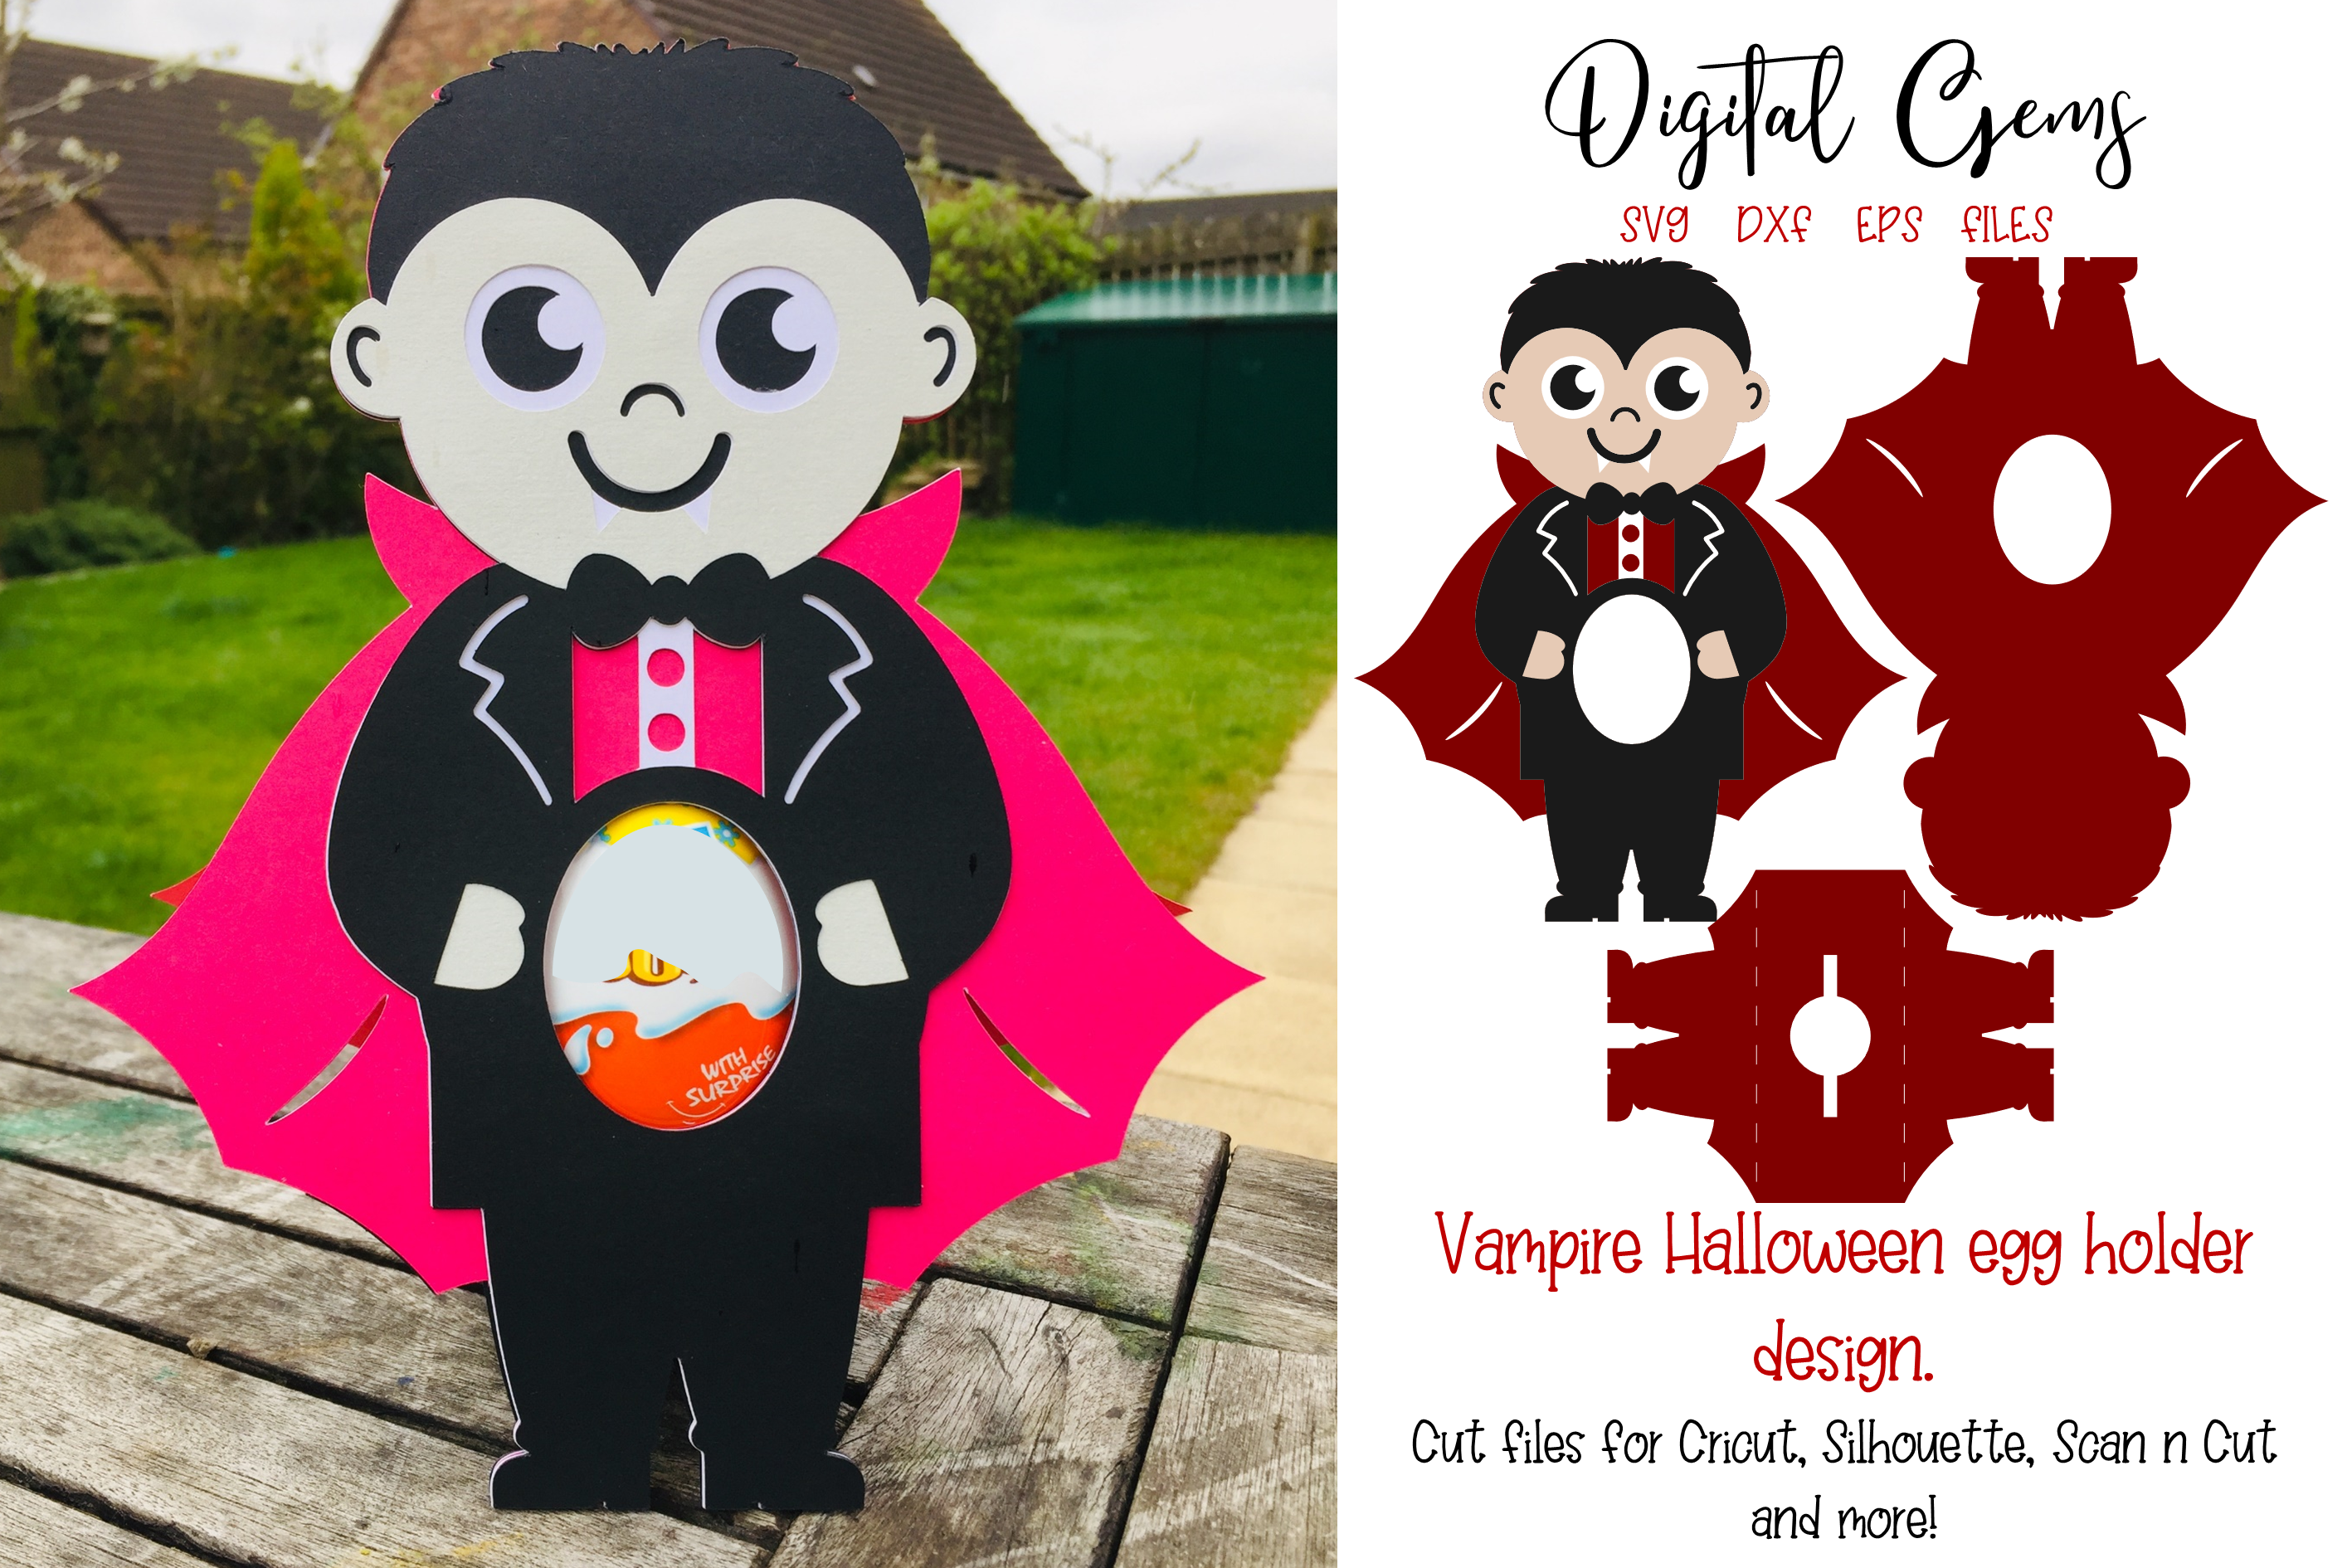 Download Free Vampire Egg Holder Design Graphic By Digital Gems Creative Fabrica for Cricut Explore, Silhouette and other cutting machines.